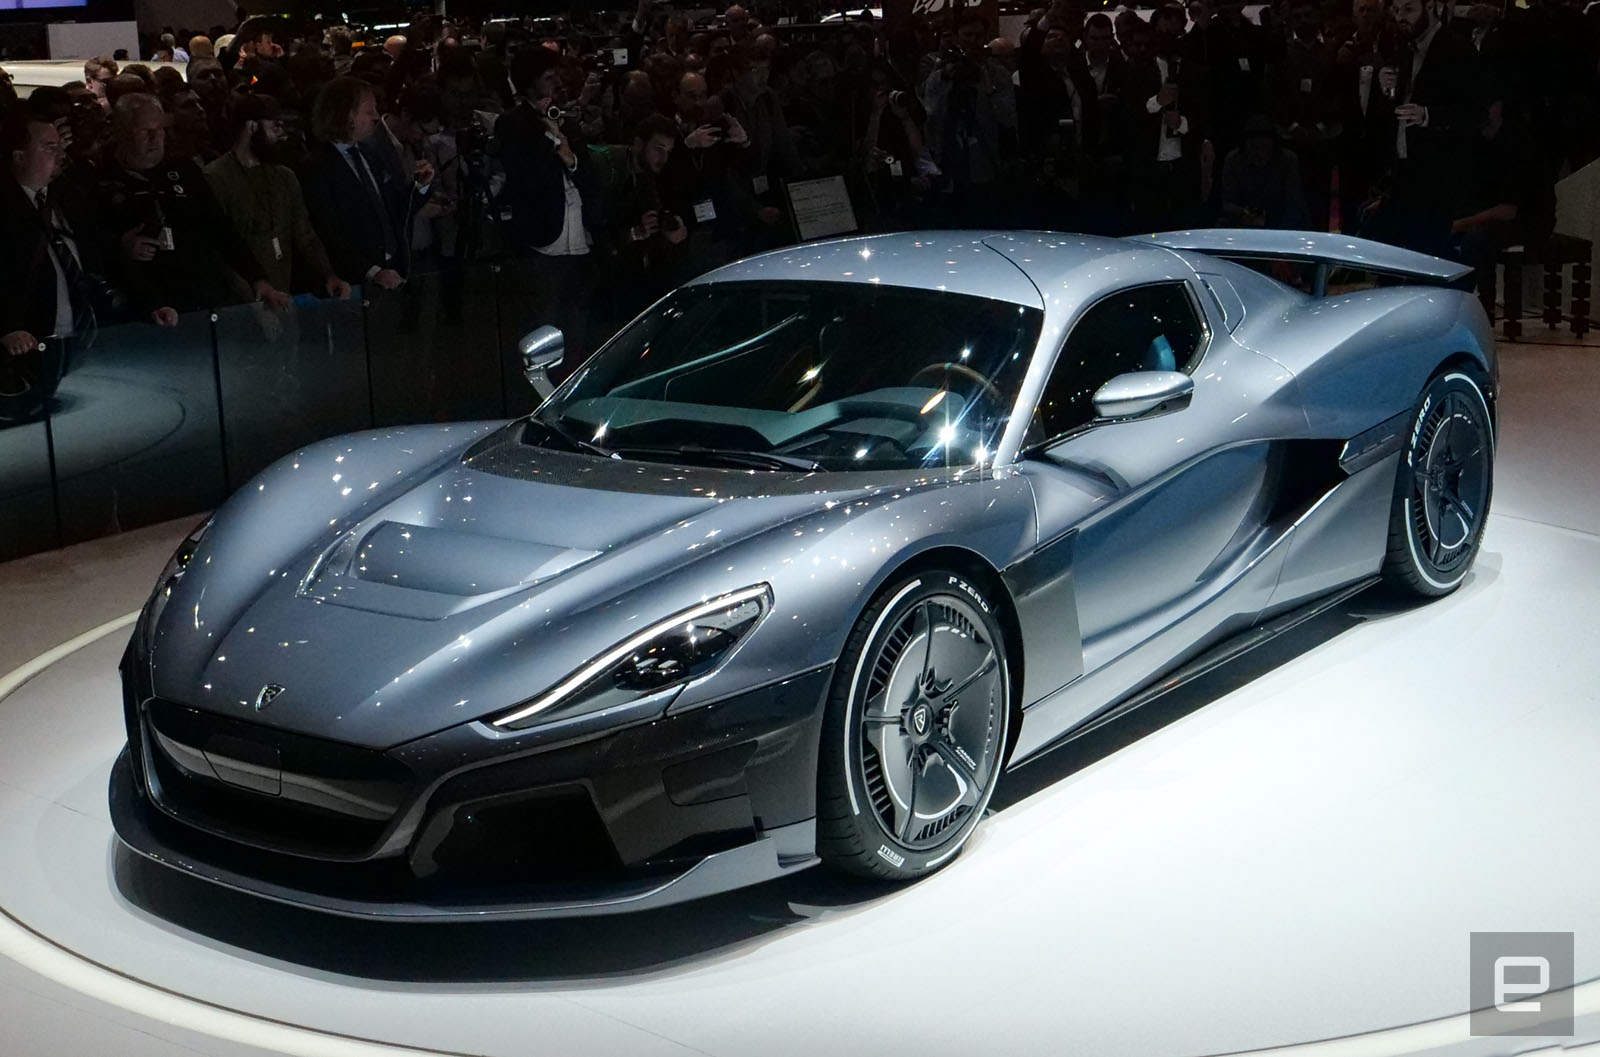 rimac unveils the 1 900 hp concept two electric hypercar 15 minut. Black Bedroom Furniture Sets. Home Design Ideas